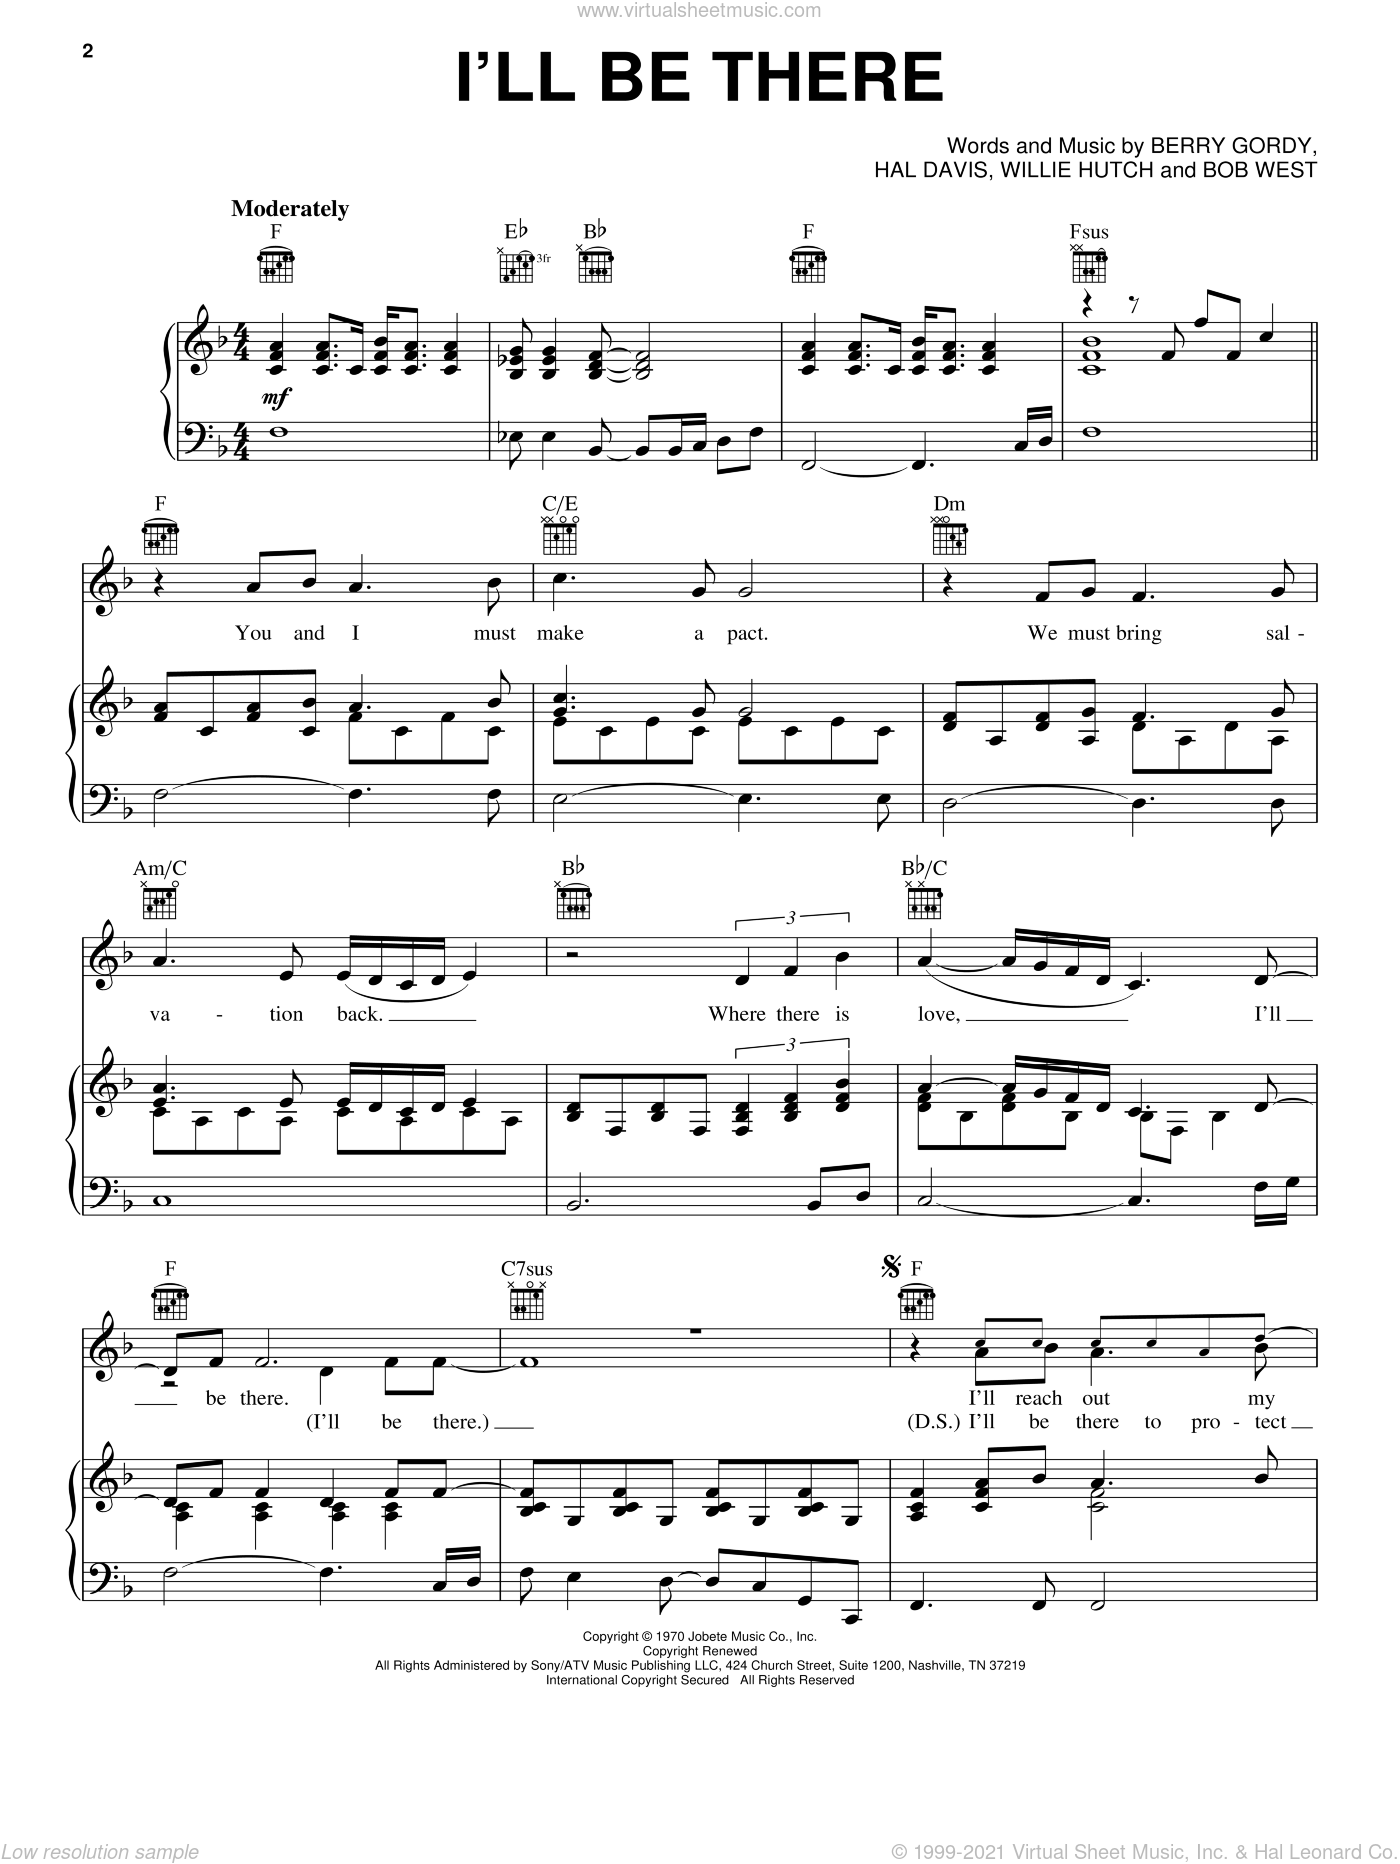 I'll Be There sheet music for voice, piano or guitar by Willie Hutch